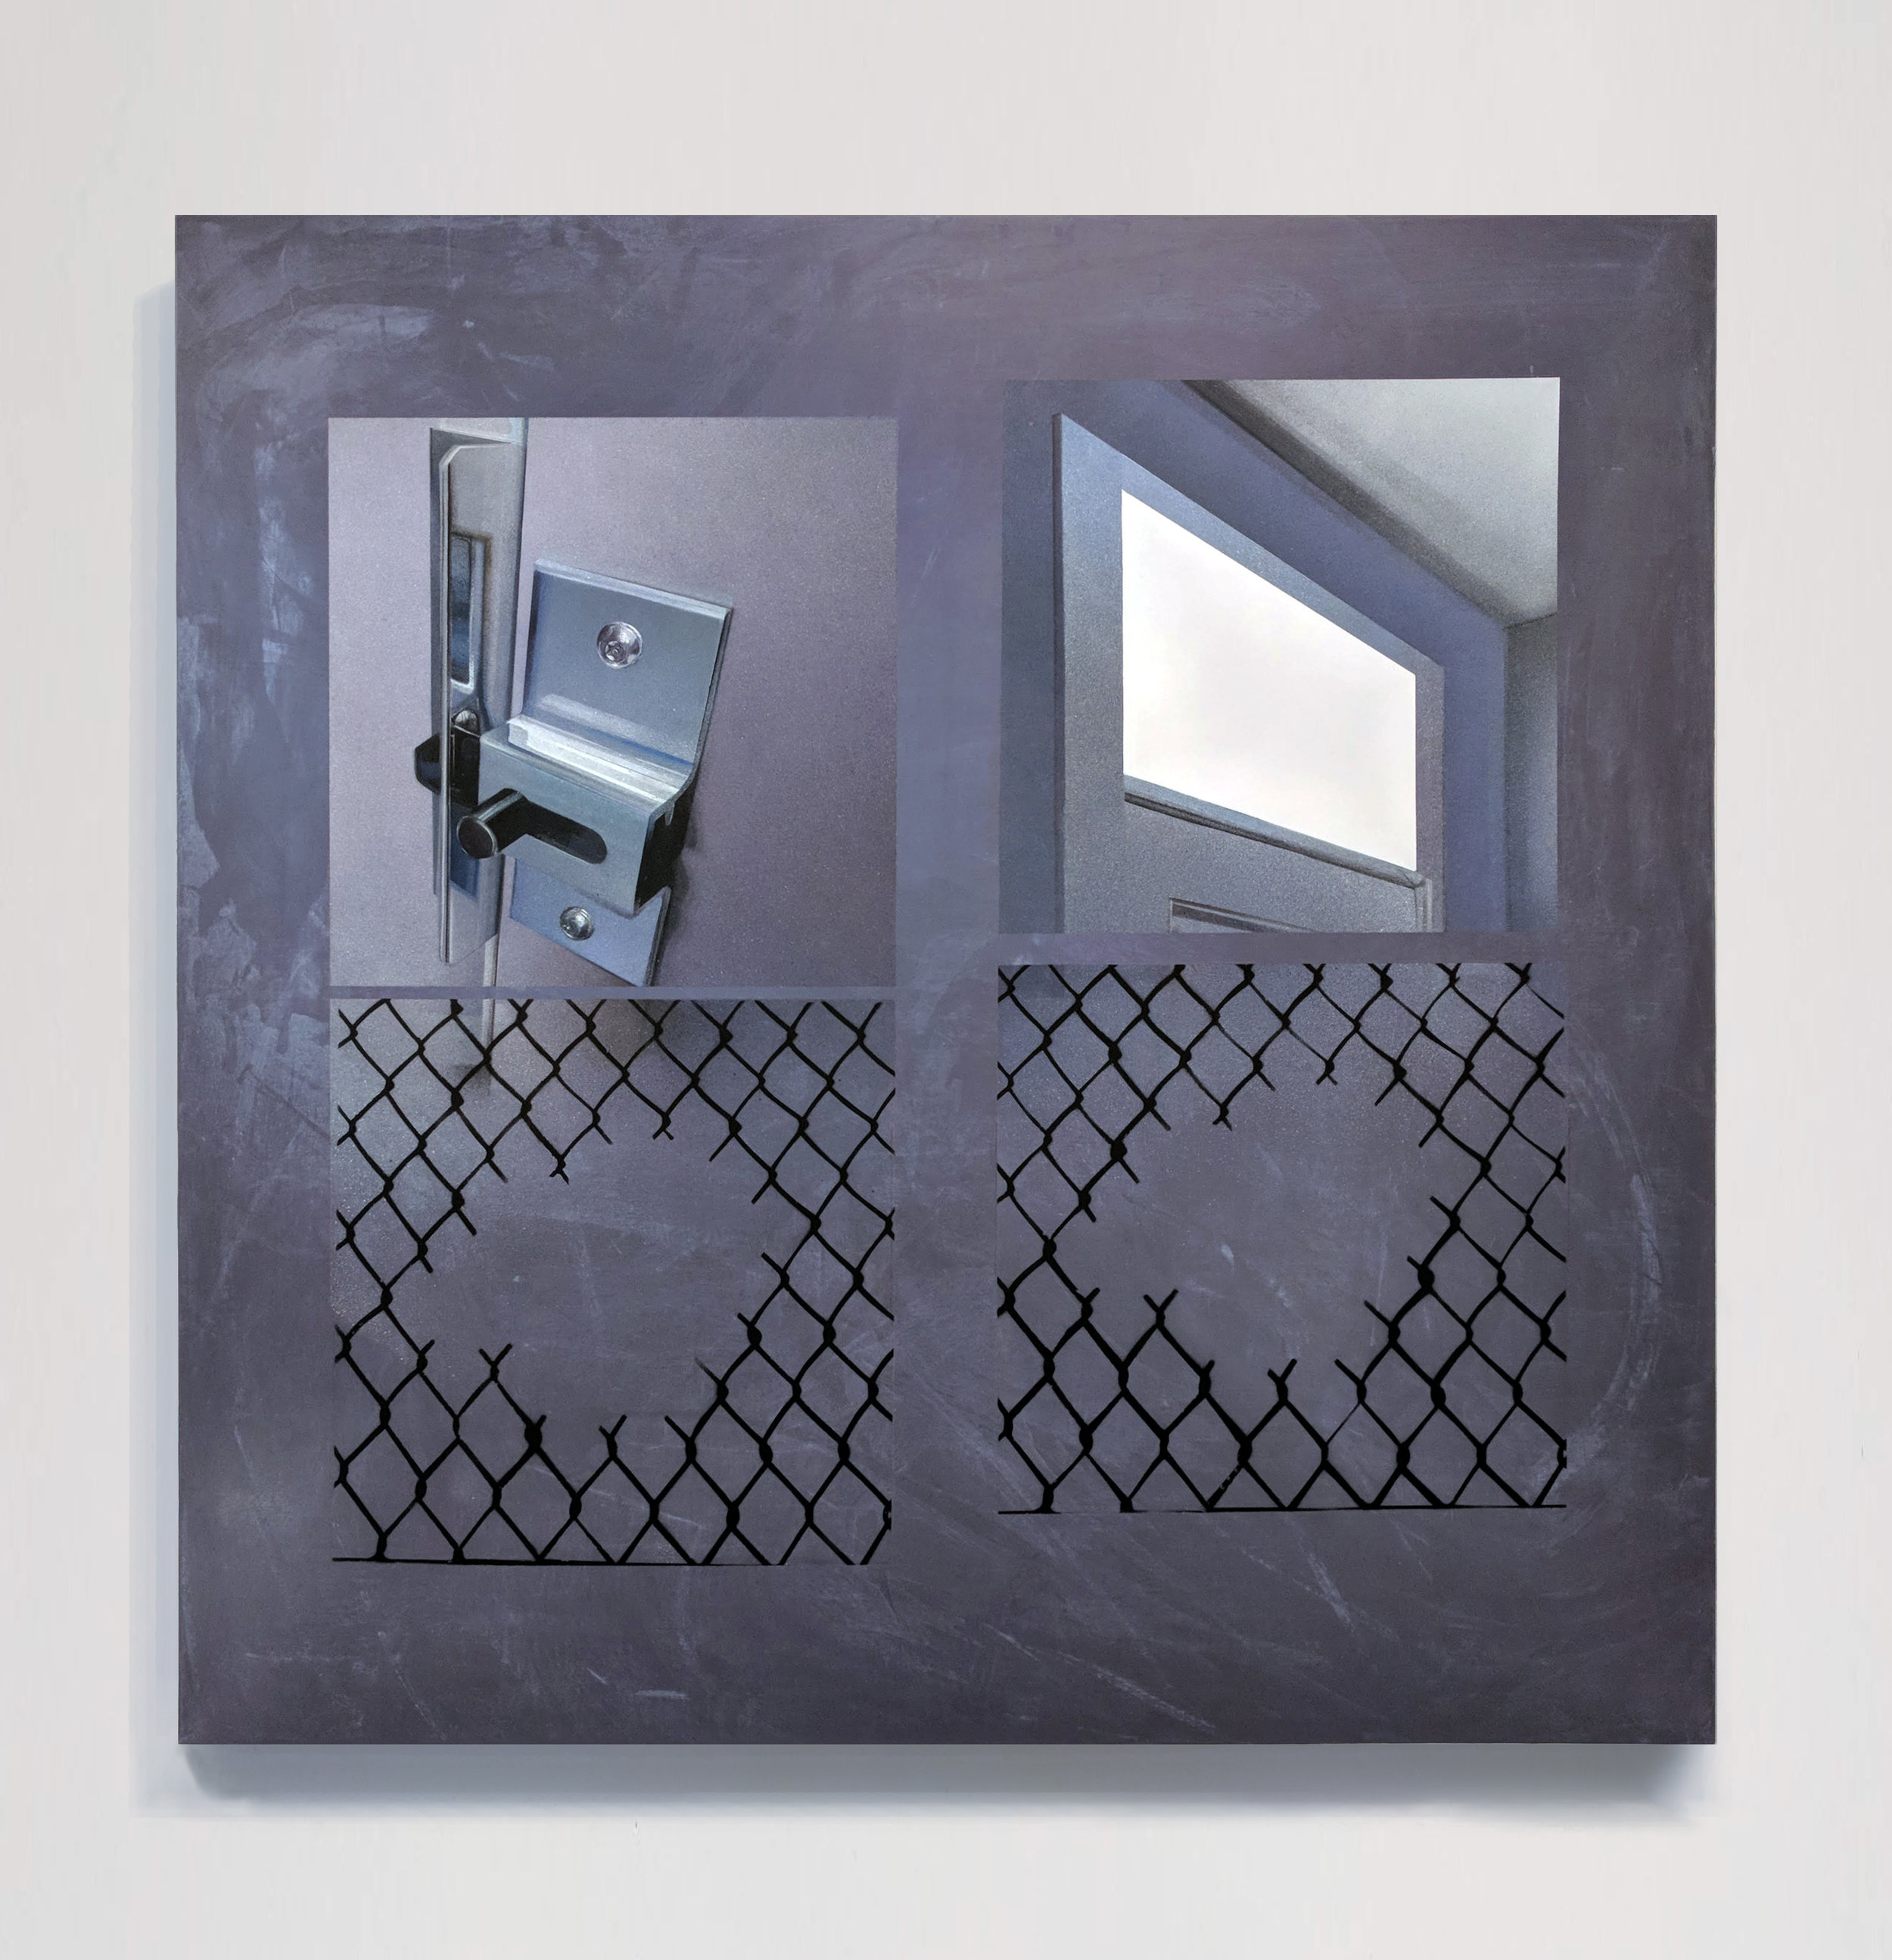 Lock, window, and fences  2018  spray paint and marker on wood panel  47.5in. x 47.5in. x 2in.